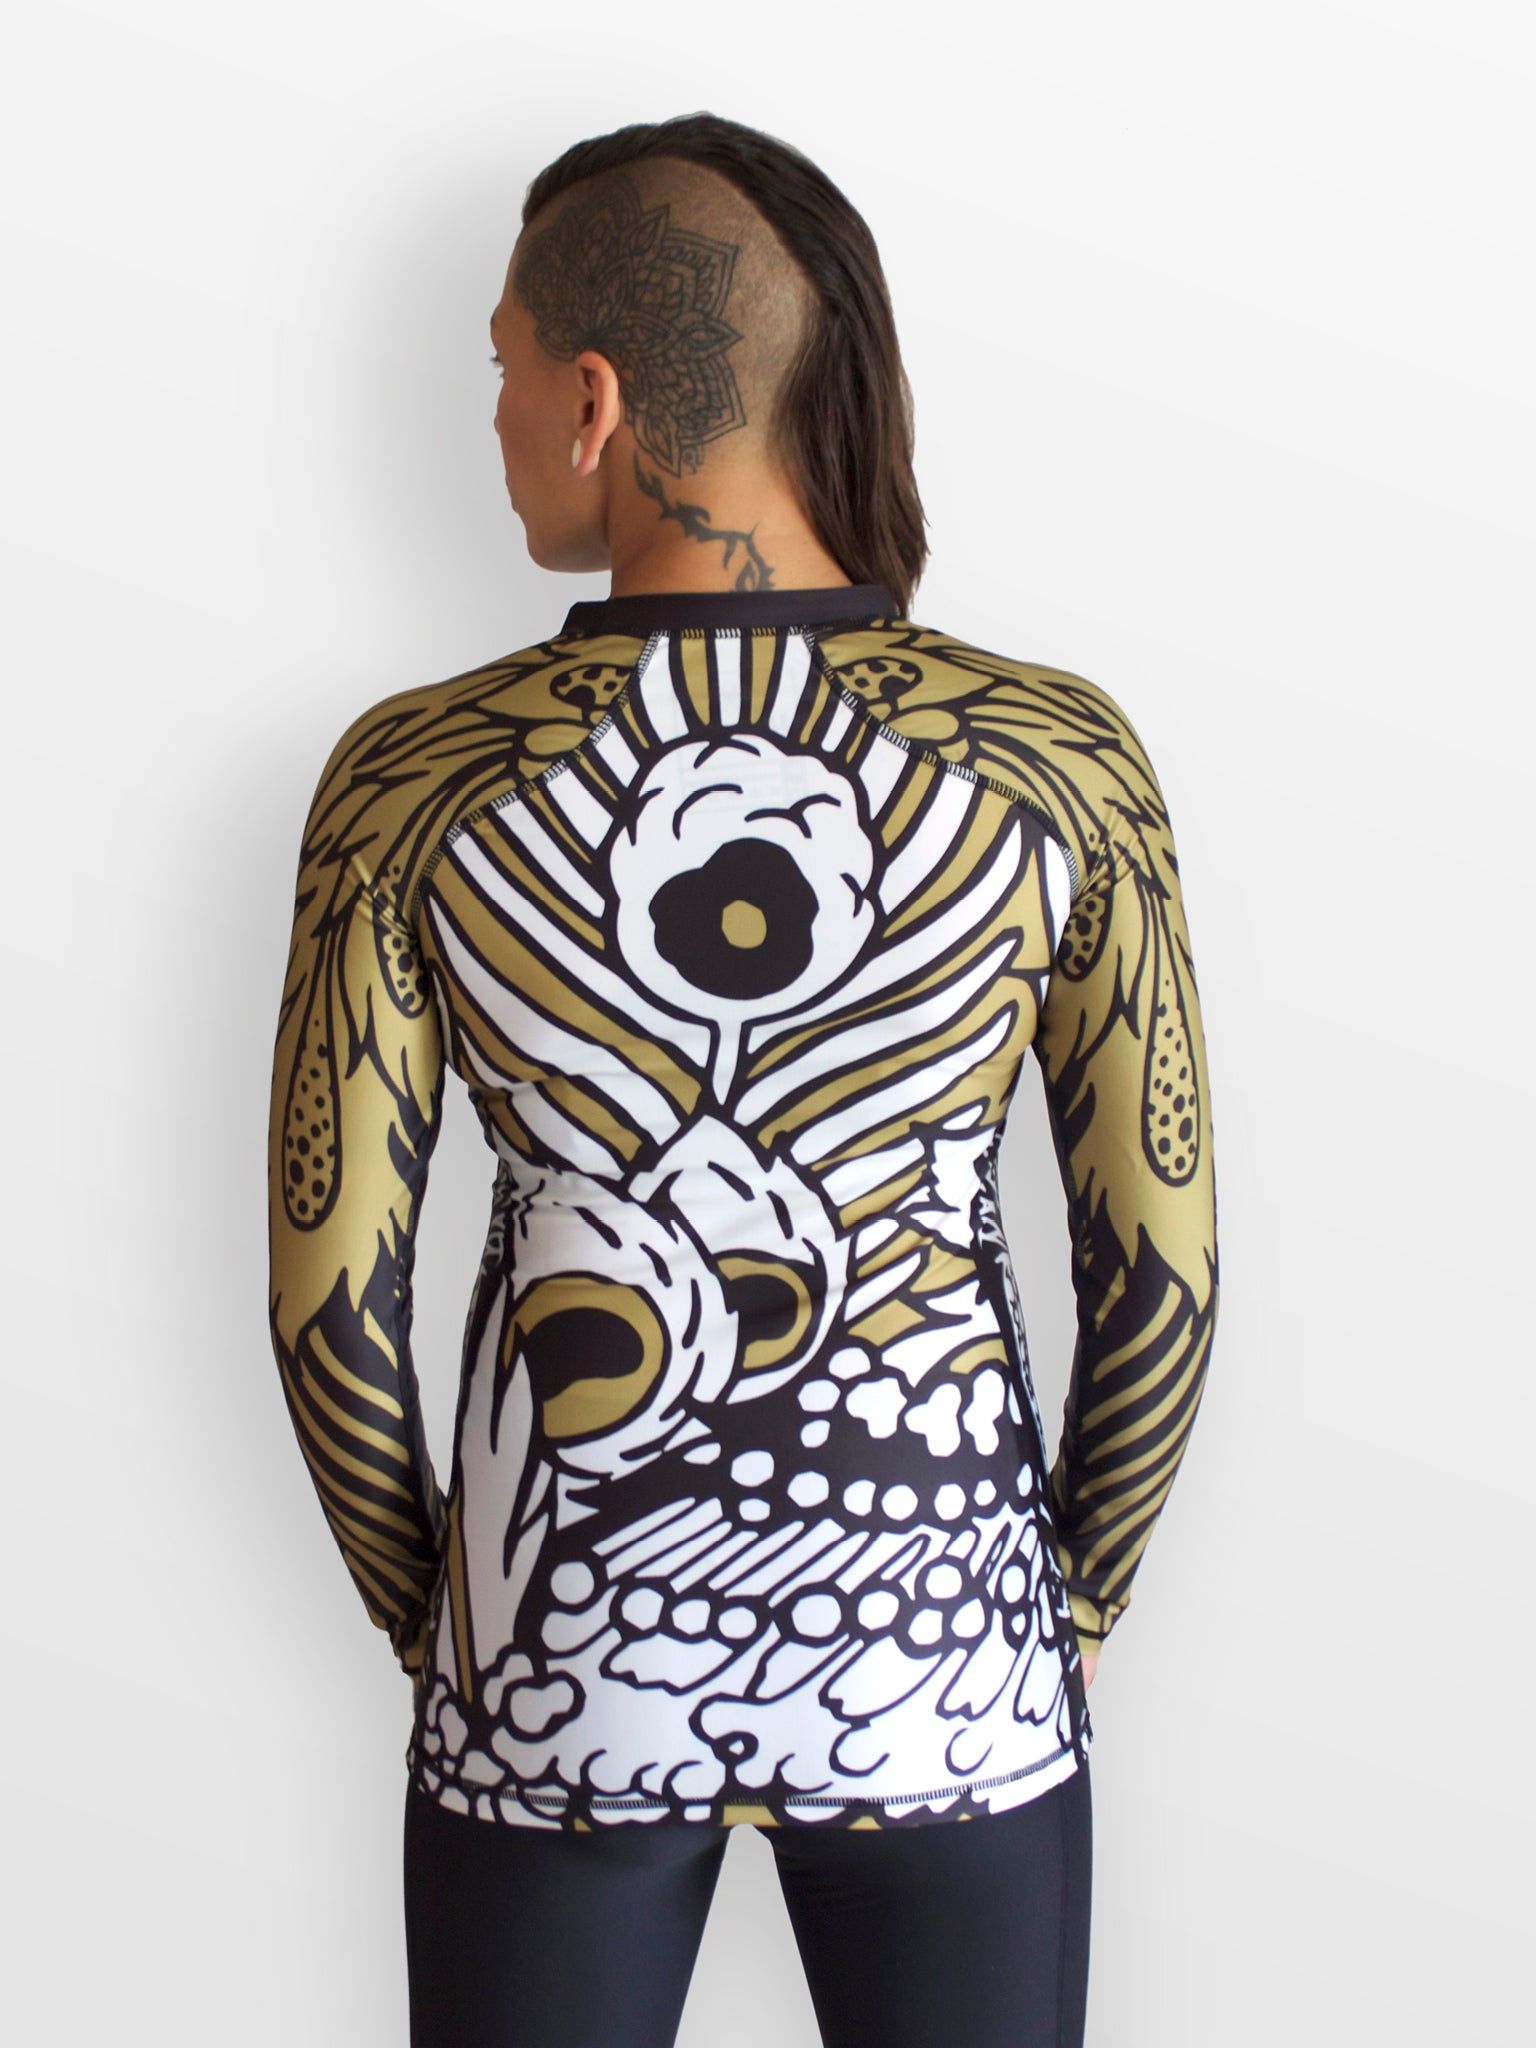 Pavão long sleeve rashguard - white | black | gold